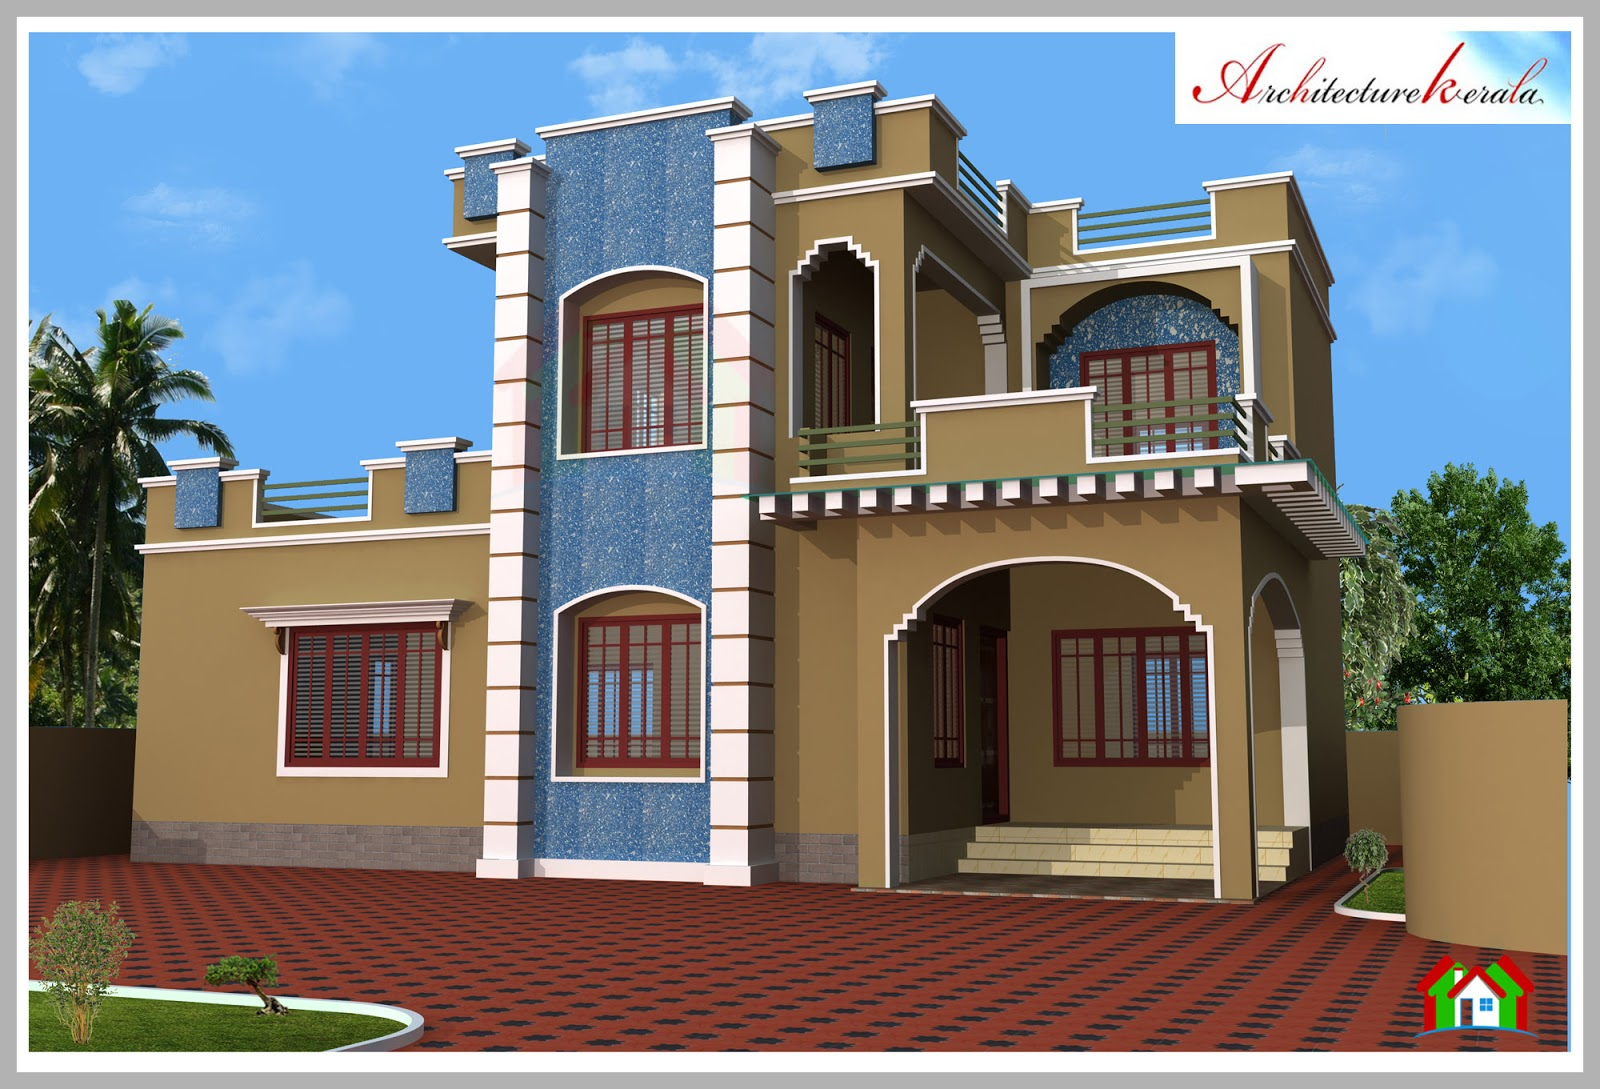 Ground Floor House Elevation Design : Architecture kerala d elevation and floor plan